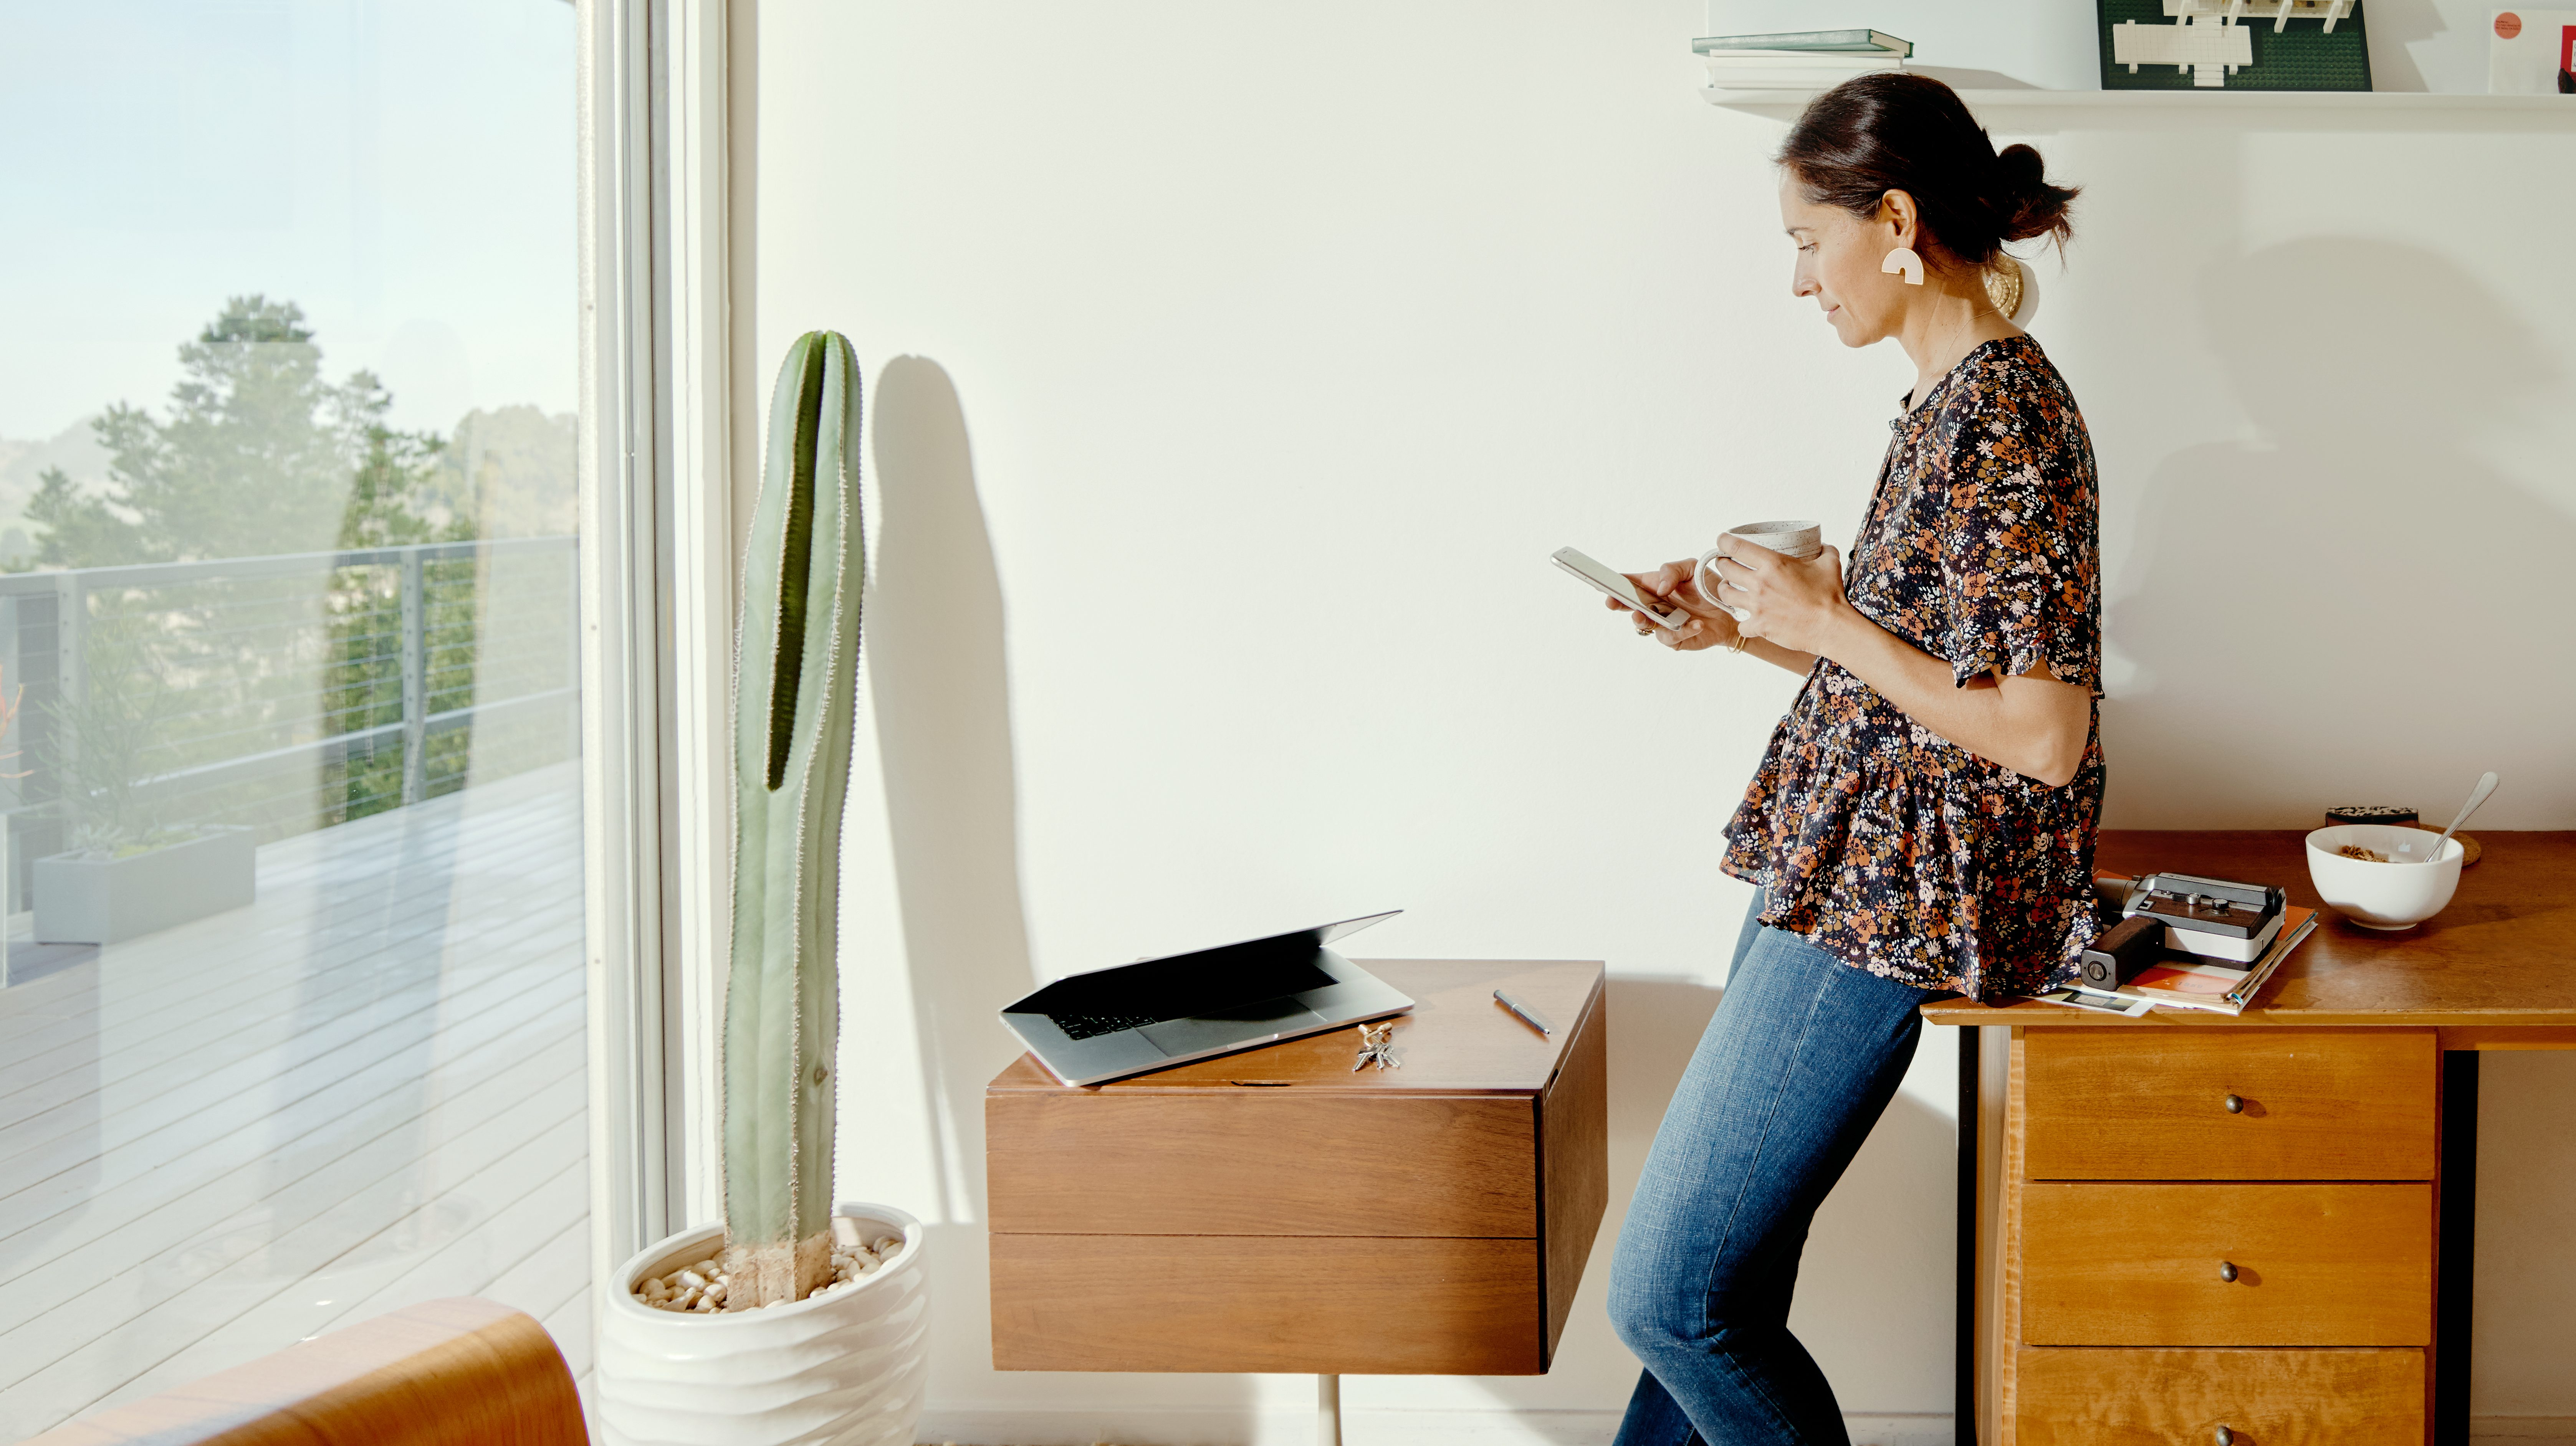 A woman uses her phone in a sunlit home with Southwest decor